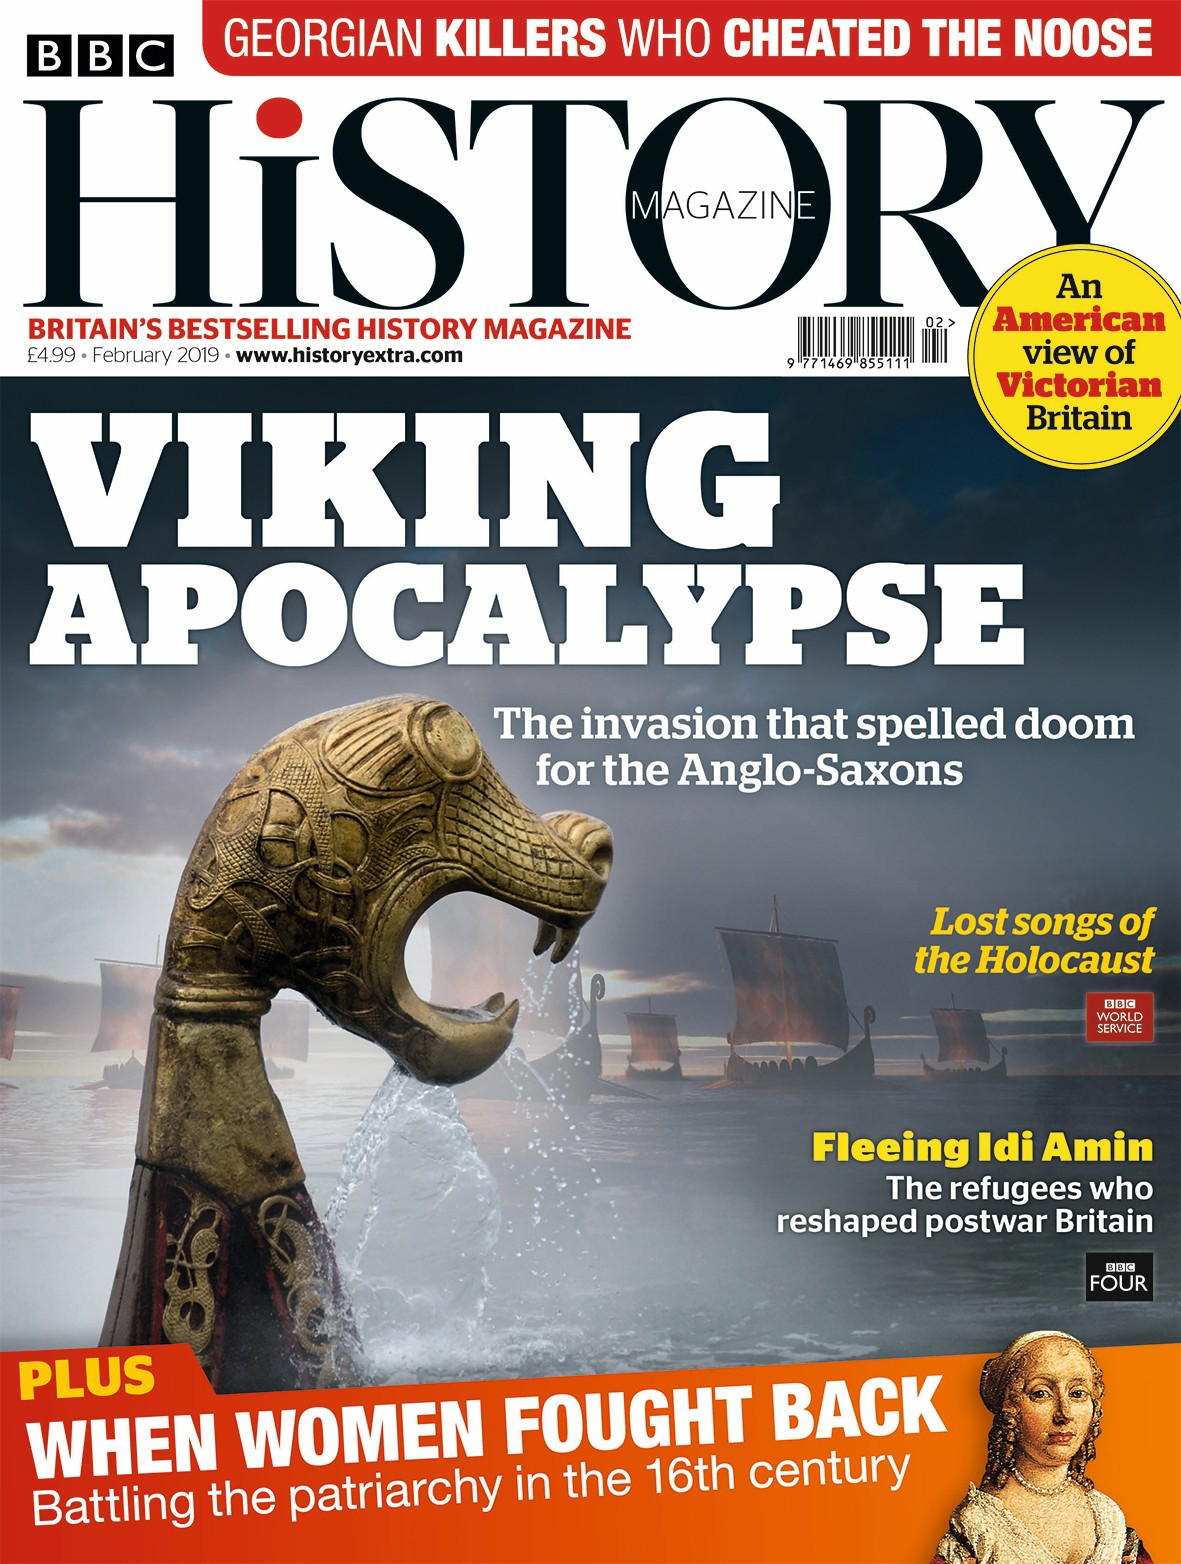 The February 2019 issue of BBC History Magazine